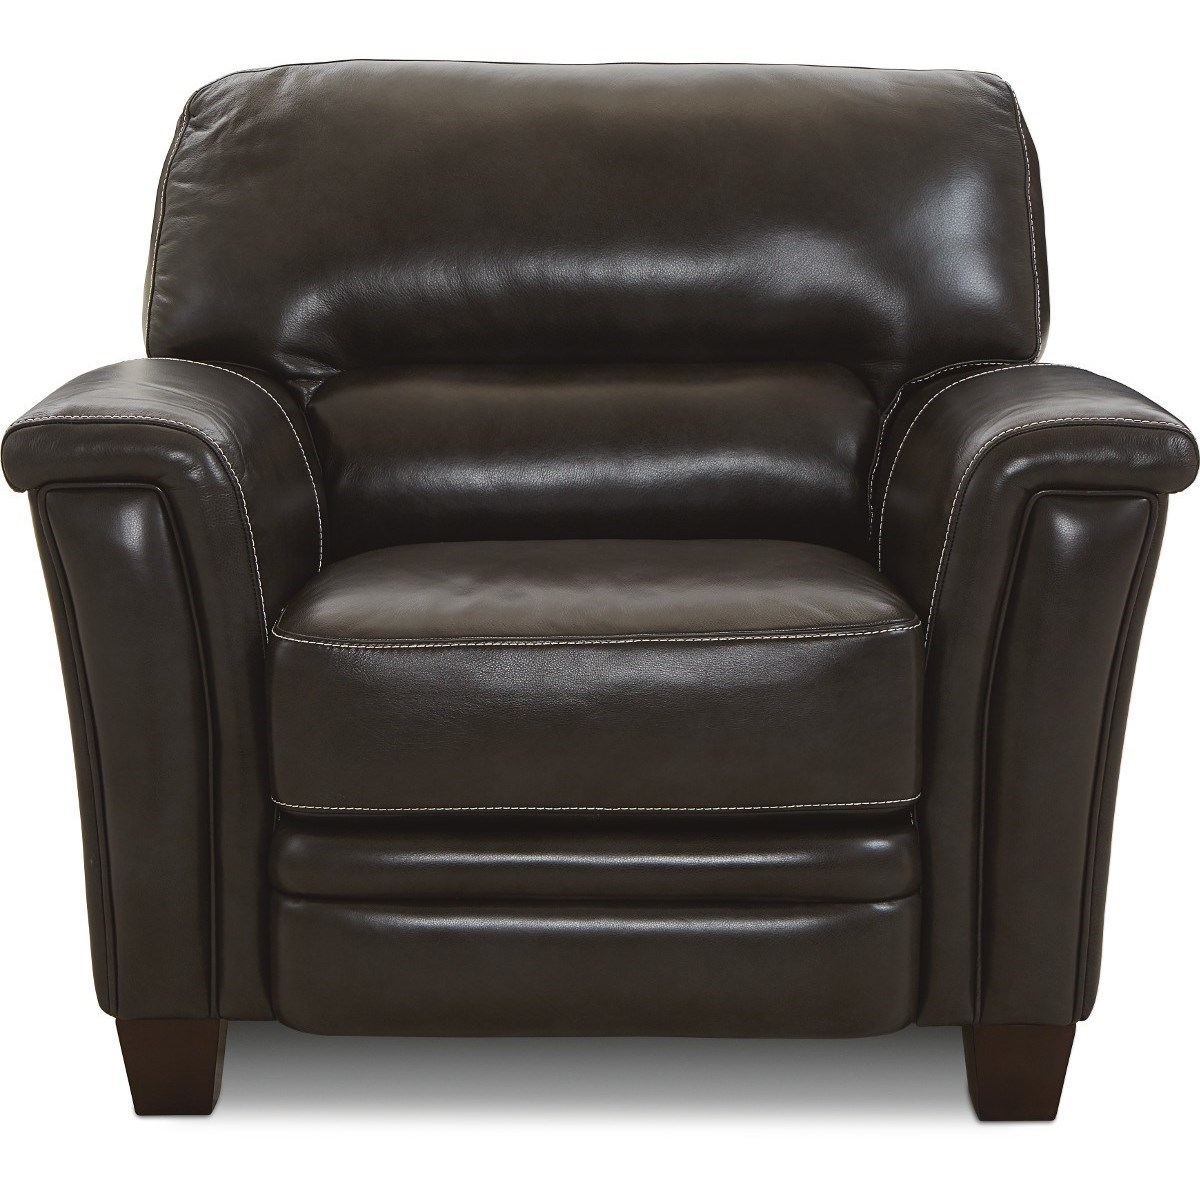 Image of: La Z Boy Ellis Contemporary Leather Chair Superstore Upholstered Chairs